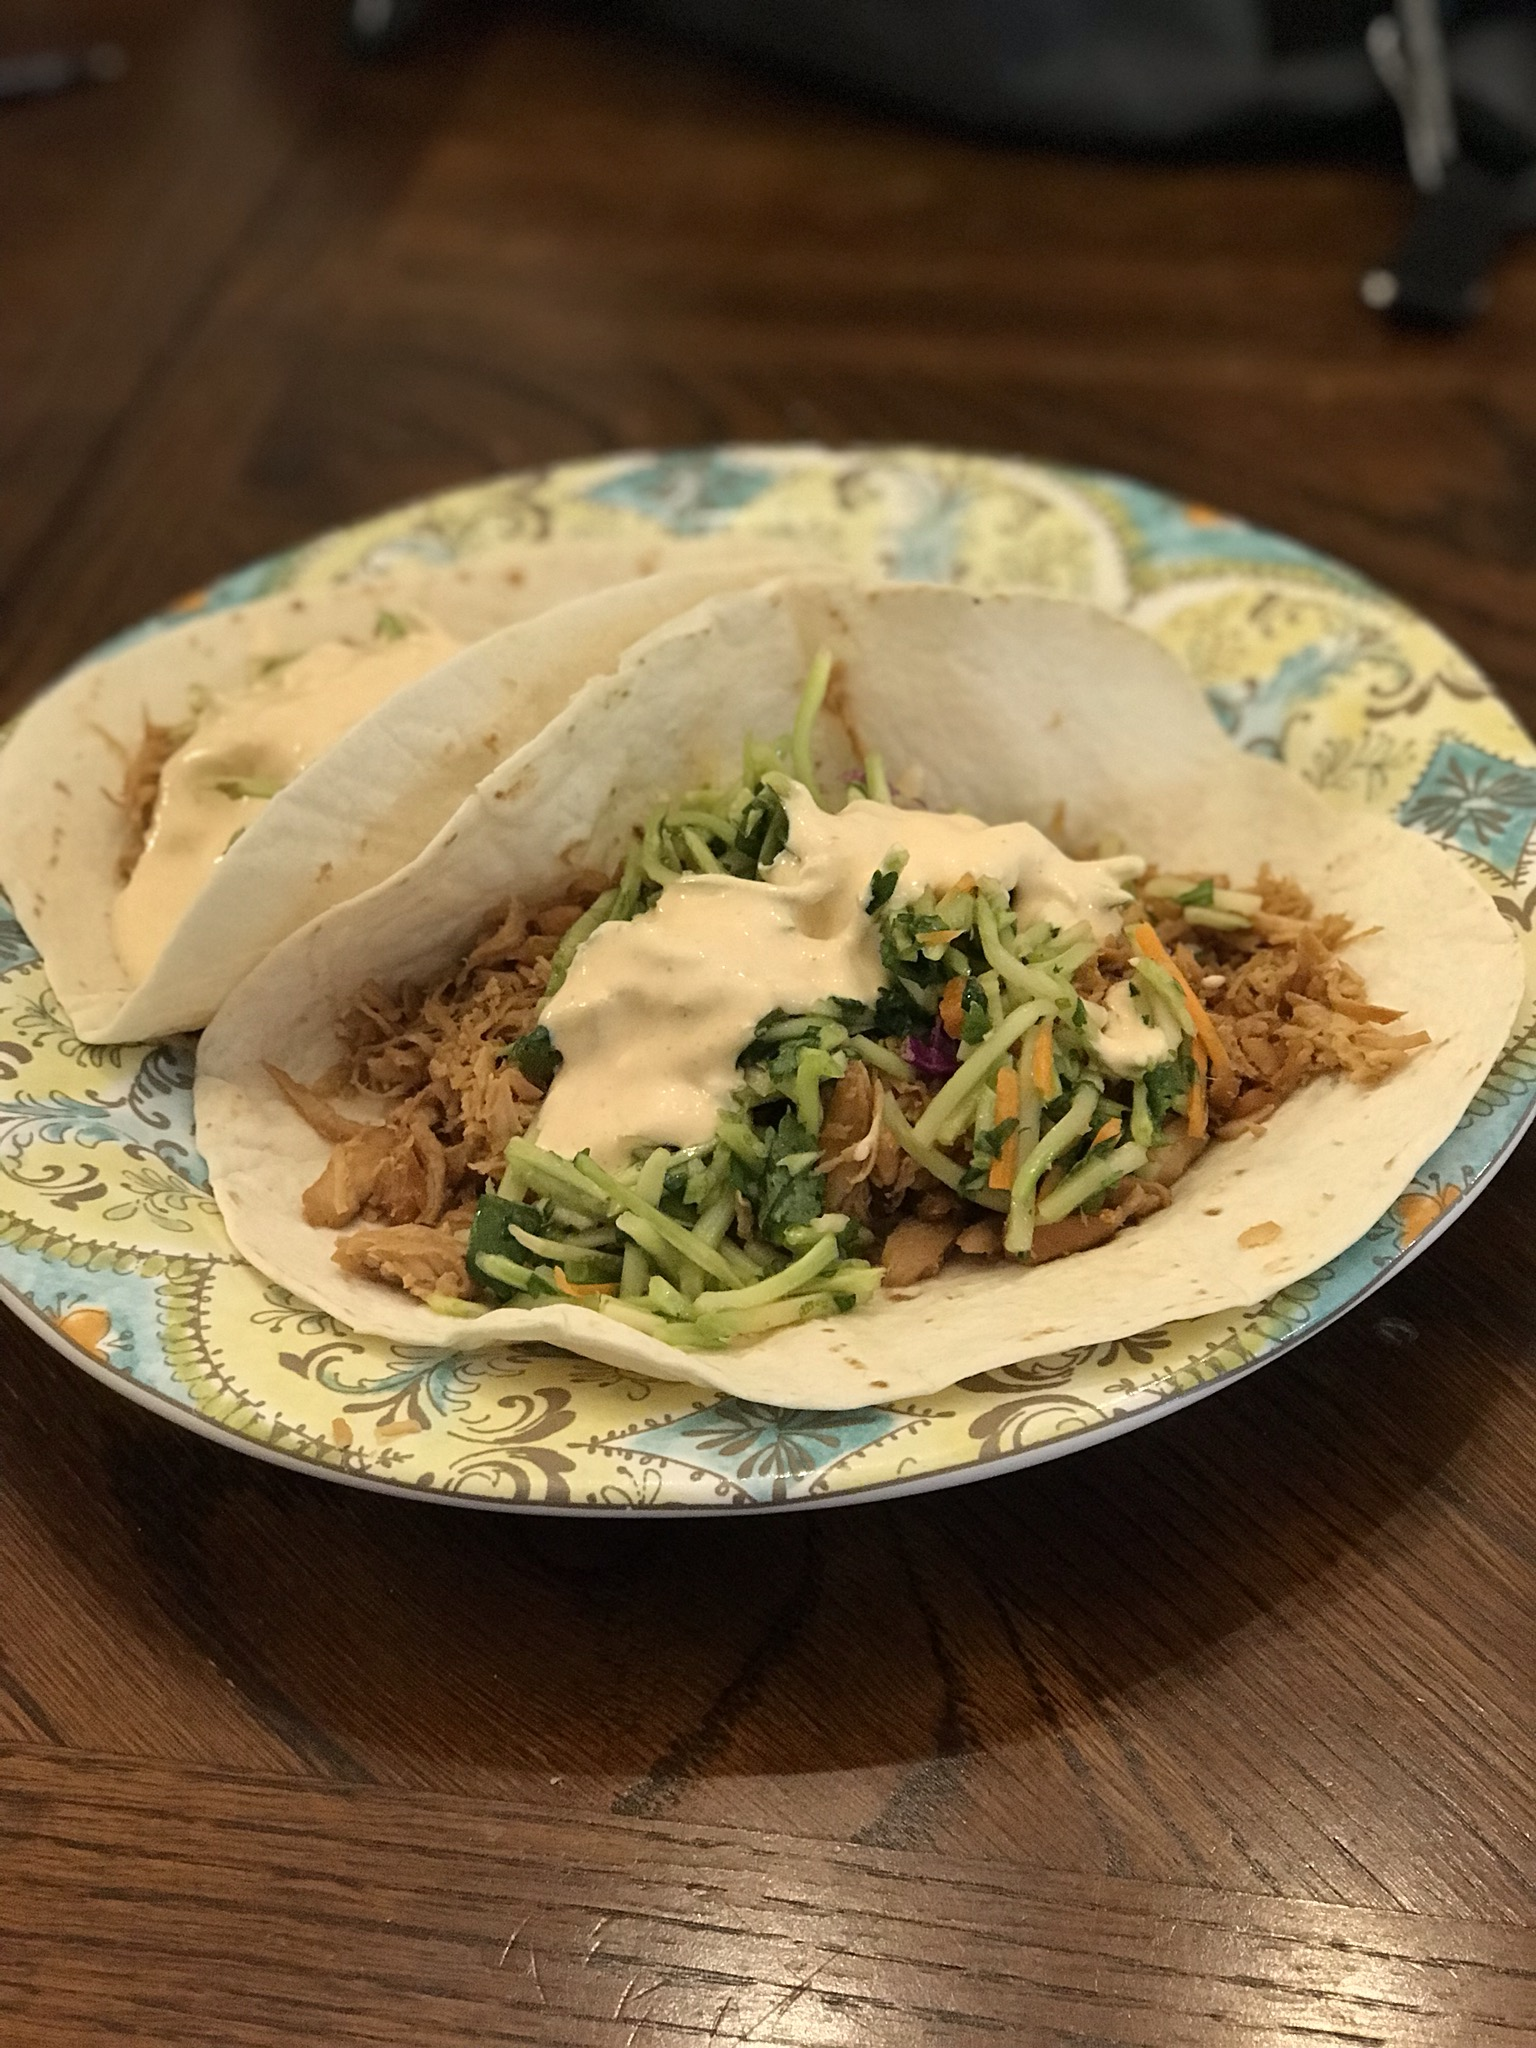 """A slow cooker allows the chicken to get so tender, it just shreds apart while soaking up the delicious marinade,"" says A K. ""These are a perfect combination of sweet, tangy, and spicy in a tacolicious bite! I use a microplane rasp grater for the ginger and lime. Makes 4 soft taco-sized portions or 8 fajita-sized portions! Enjoy!"""